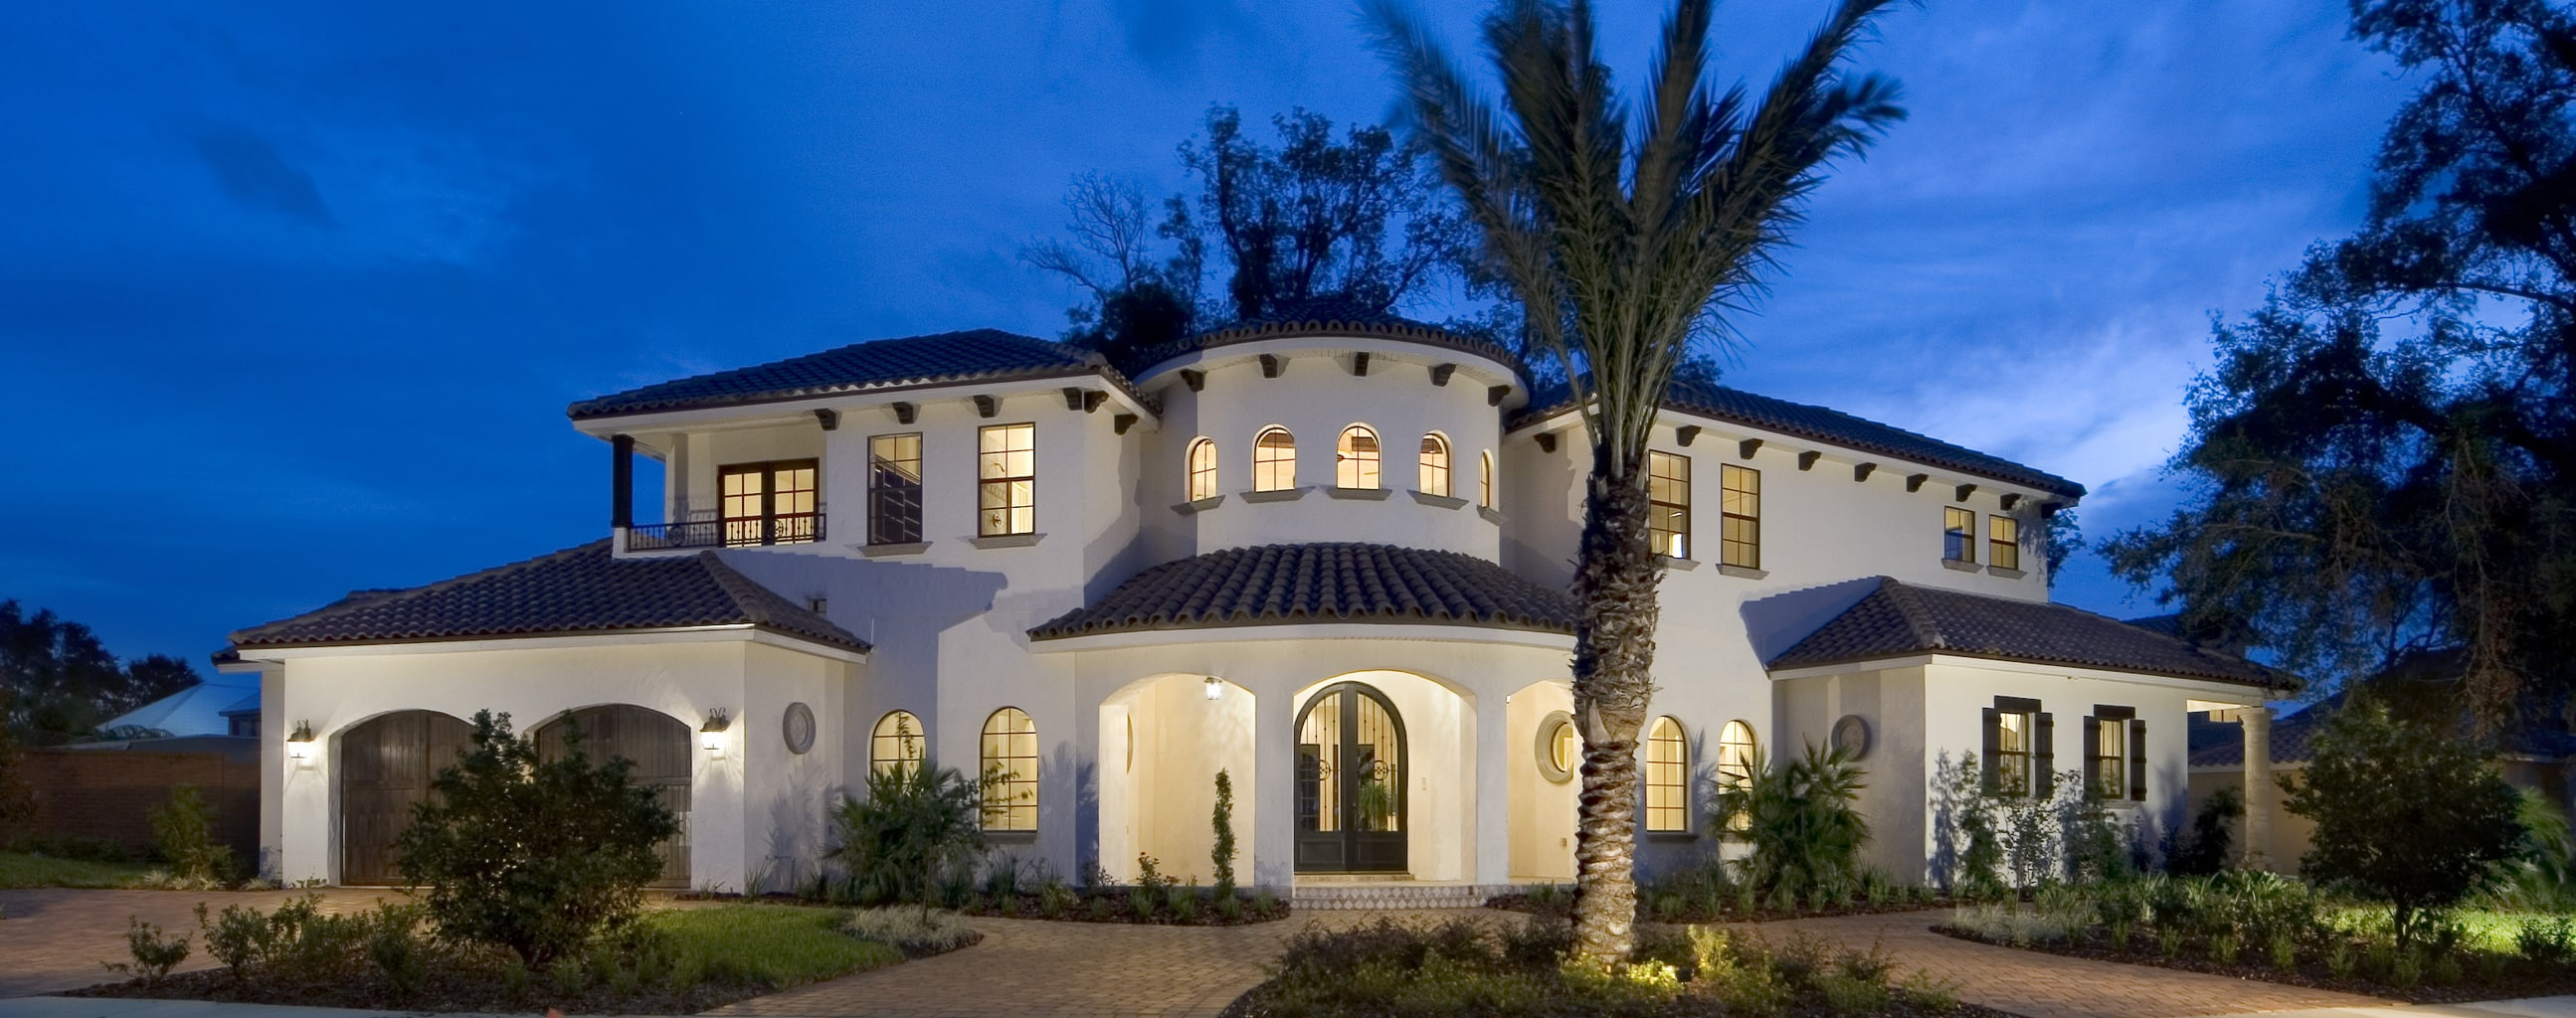 3 questions to ask for stucco with style How to plaster a house exterior